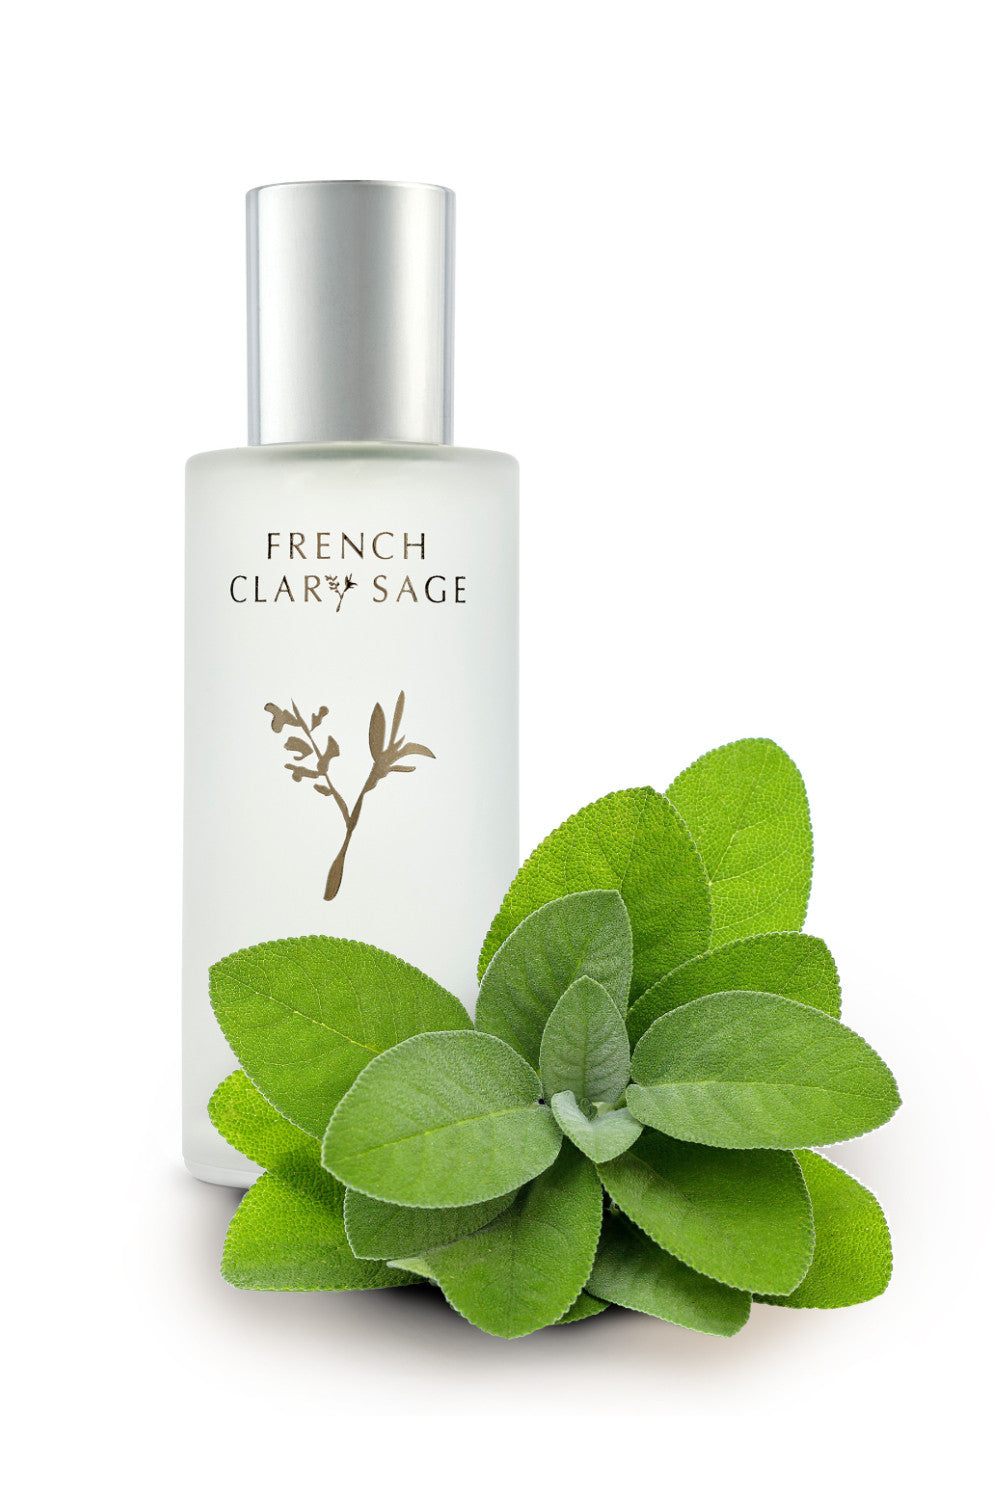 French Clary Sage